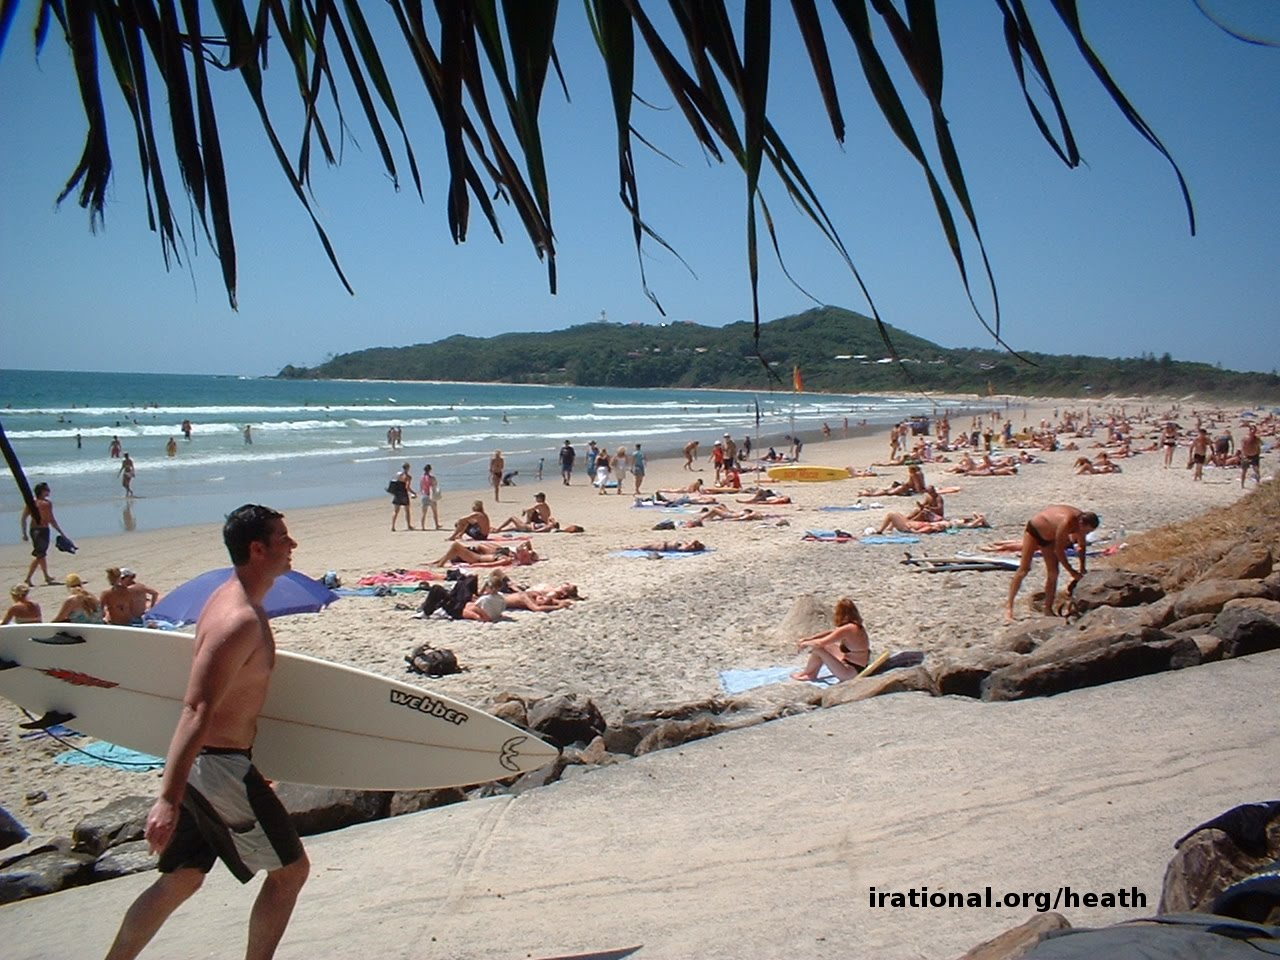 On q byron bay